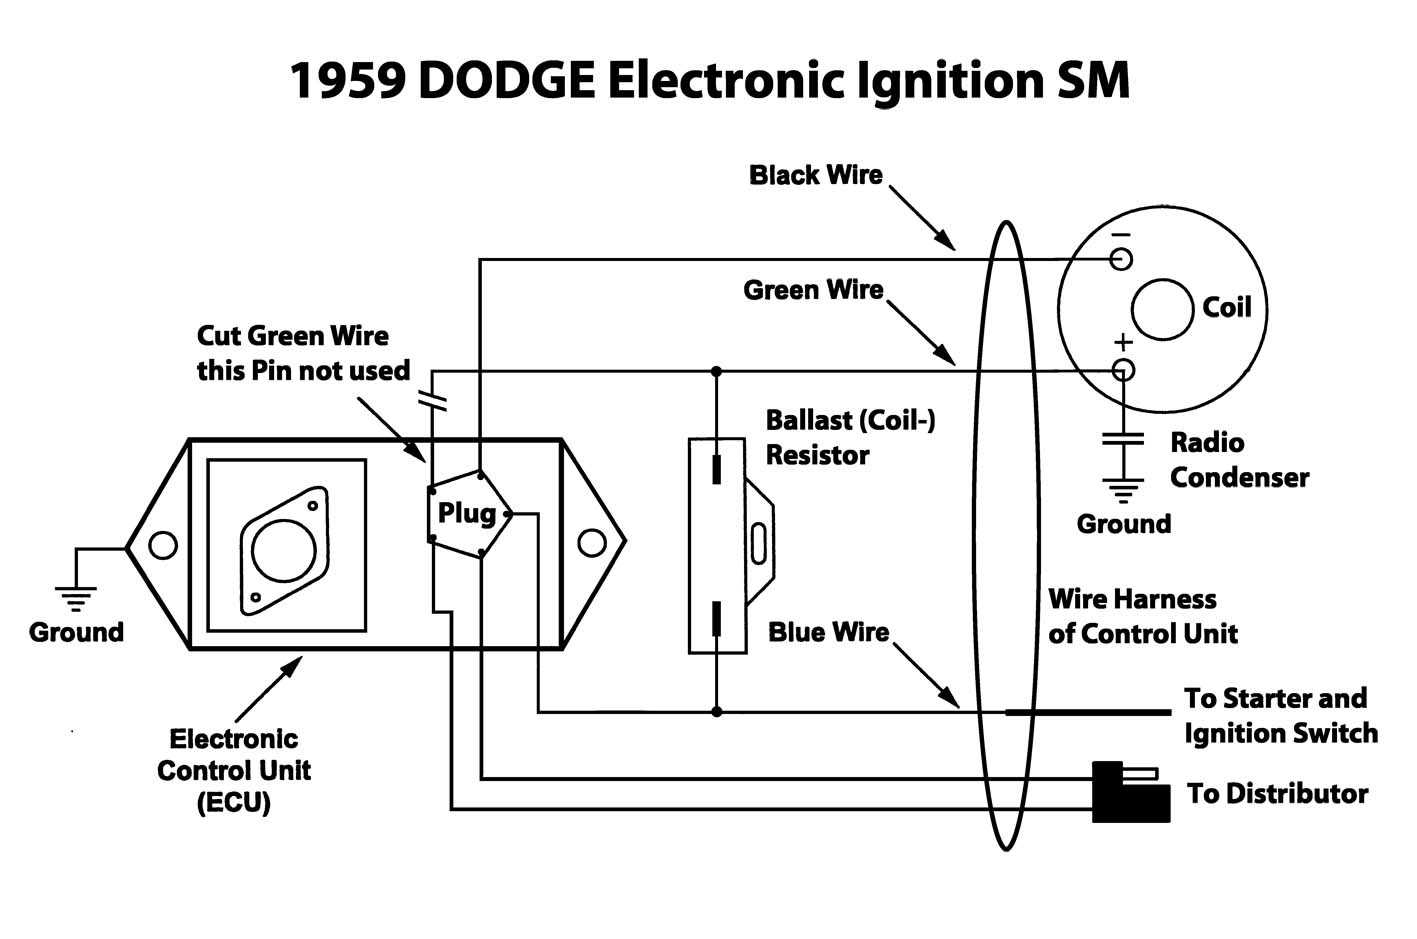 Semi Truck Suspension Diagram in addition 31 furthermore Ford Ranger Brake Line Schematic together with Wiring Diagram For 1964 Chevy Truck moreover DiagramsandIllustrations. on 1964 dodge truck parts